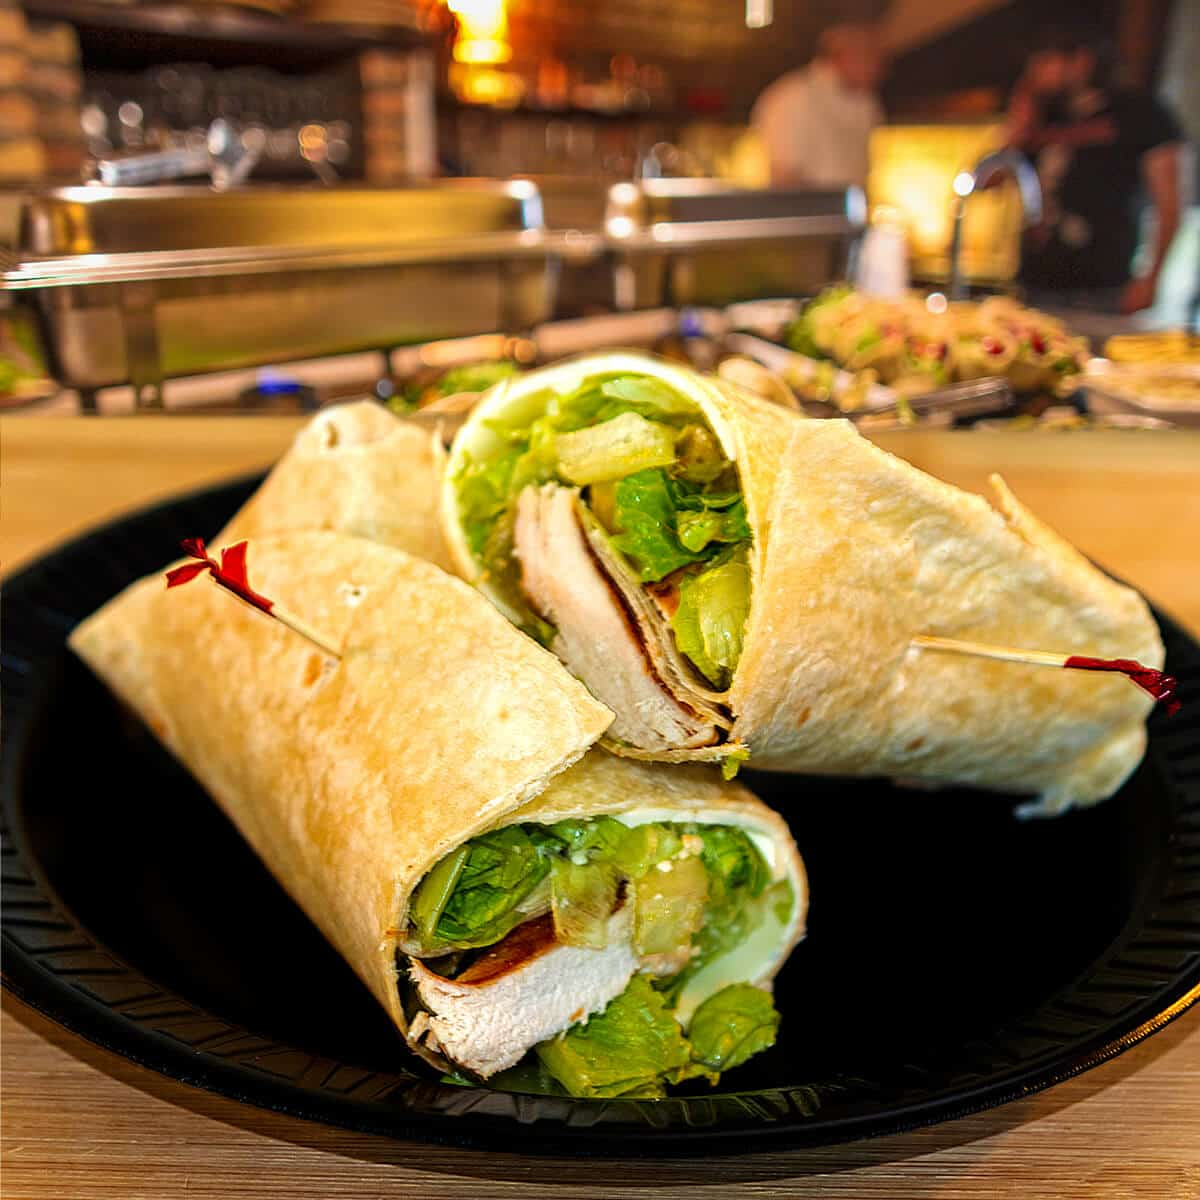 Chicken and lettuce in a wrap with dressing